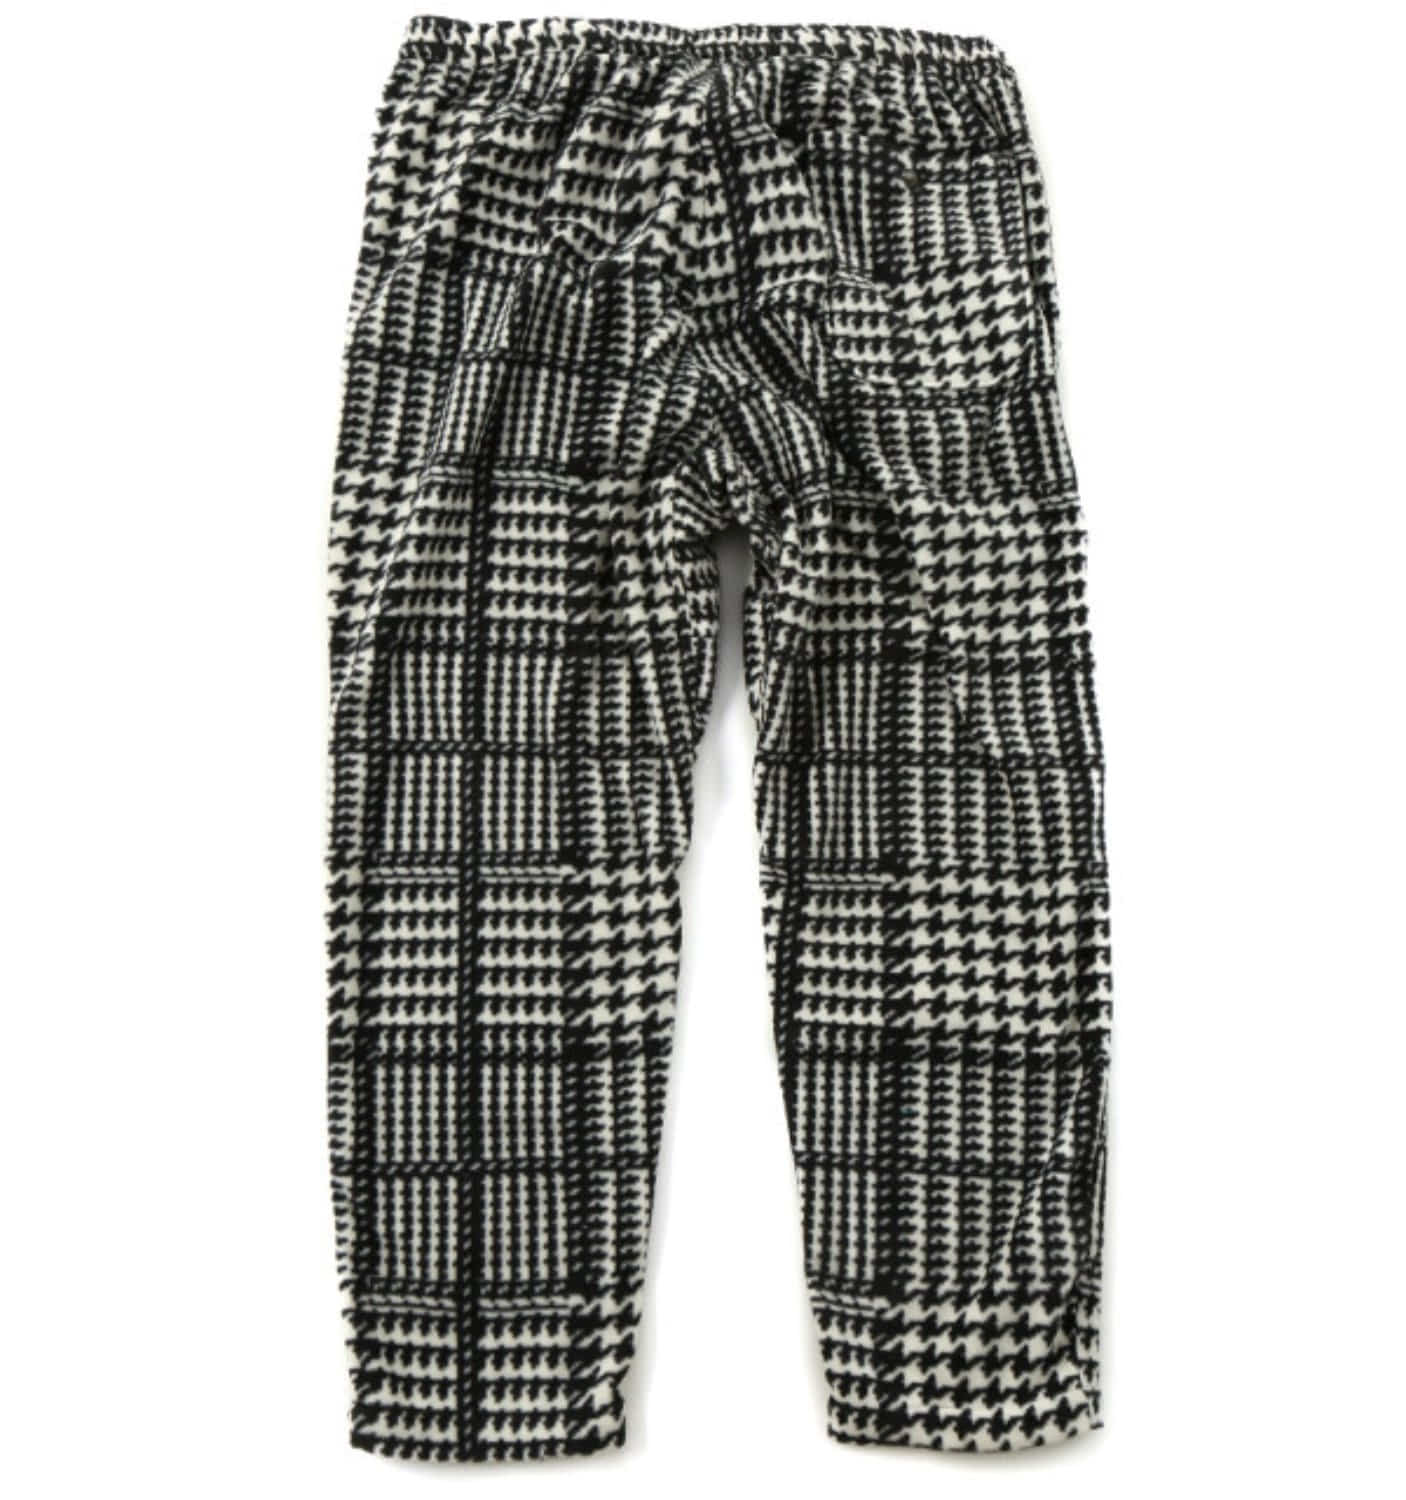 EZ PANT BLACK/WHITE POLYESTER HOUNDSTOOTH FLEECE